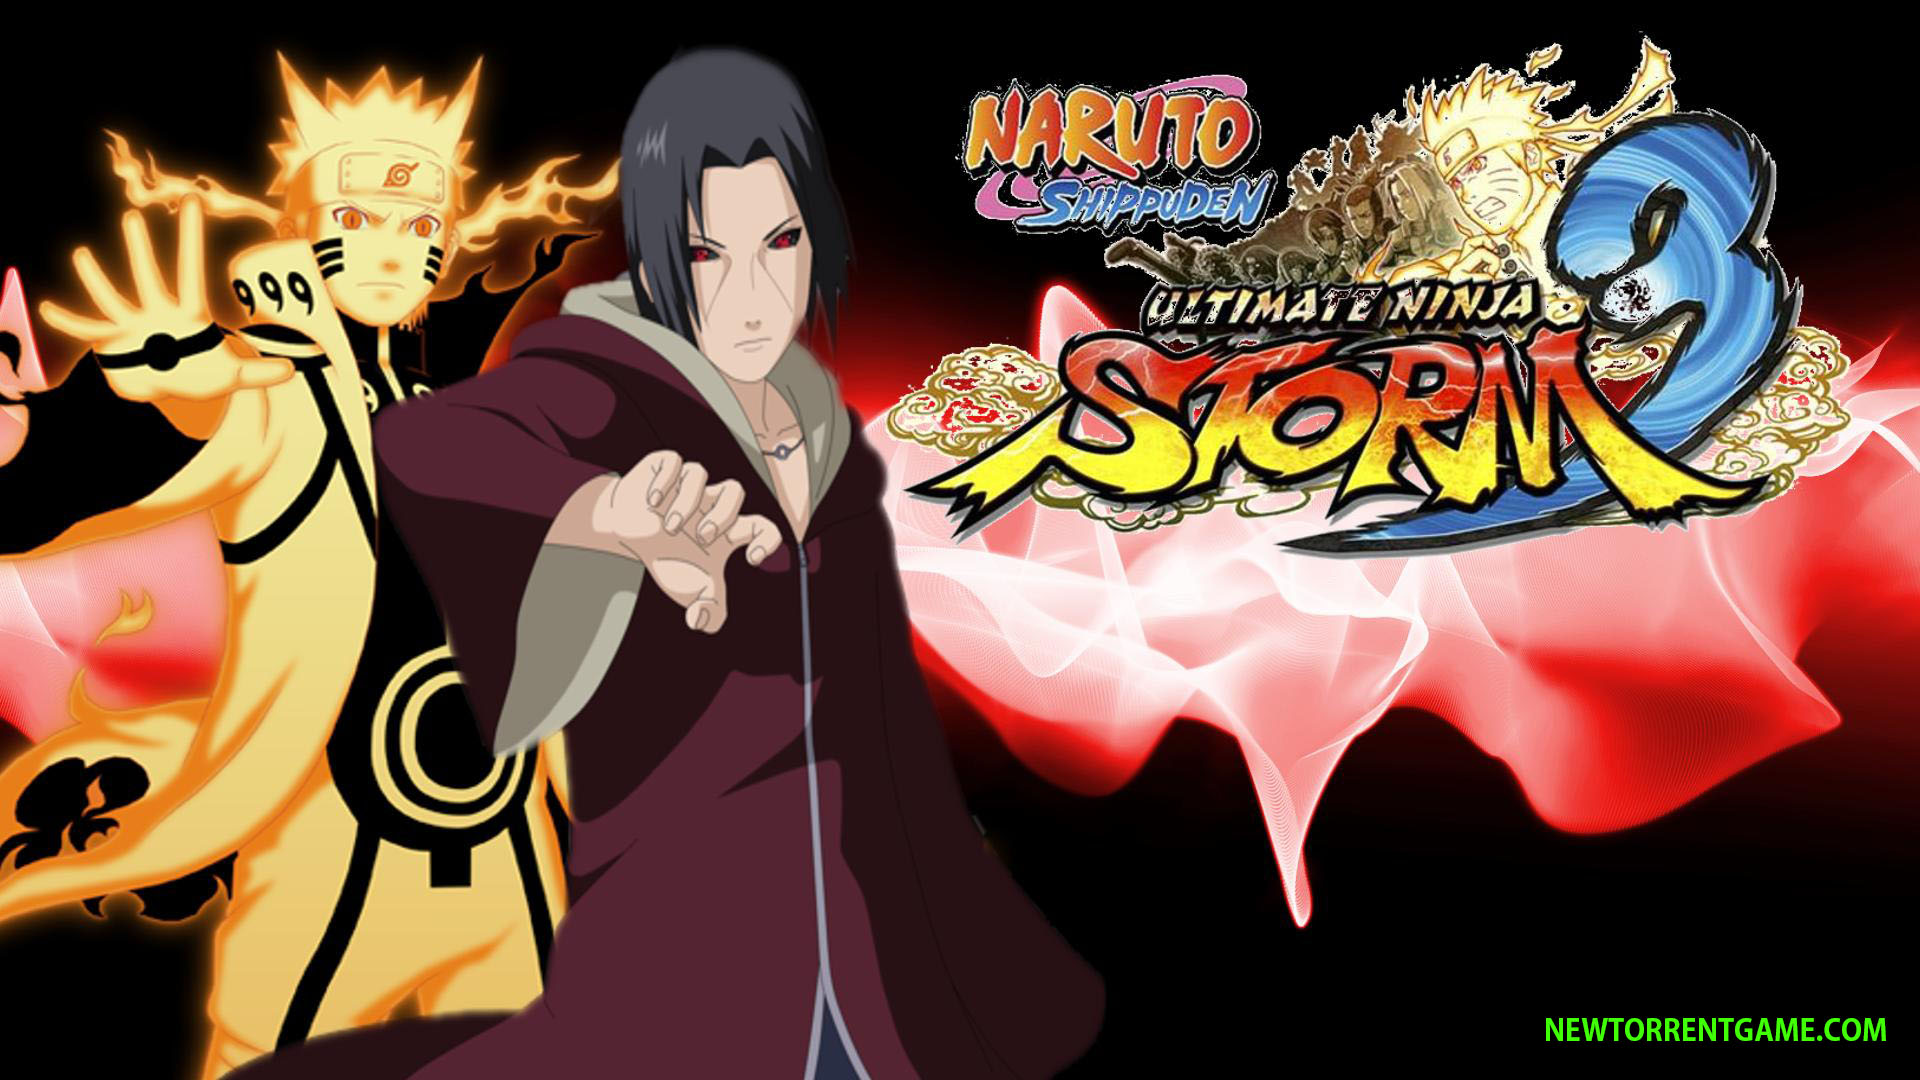 Naruto Shippuden Ultimate Ninja Storm 3 torrent